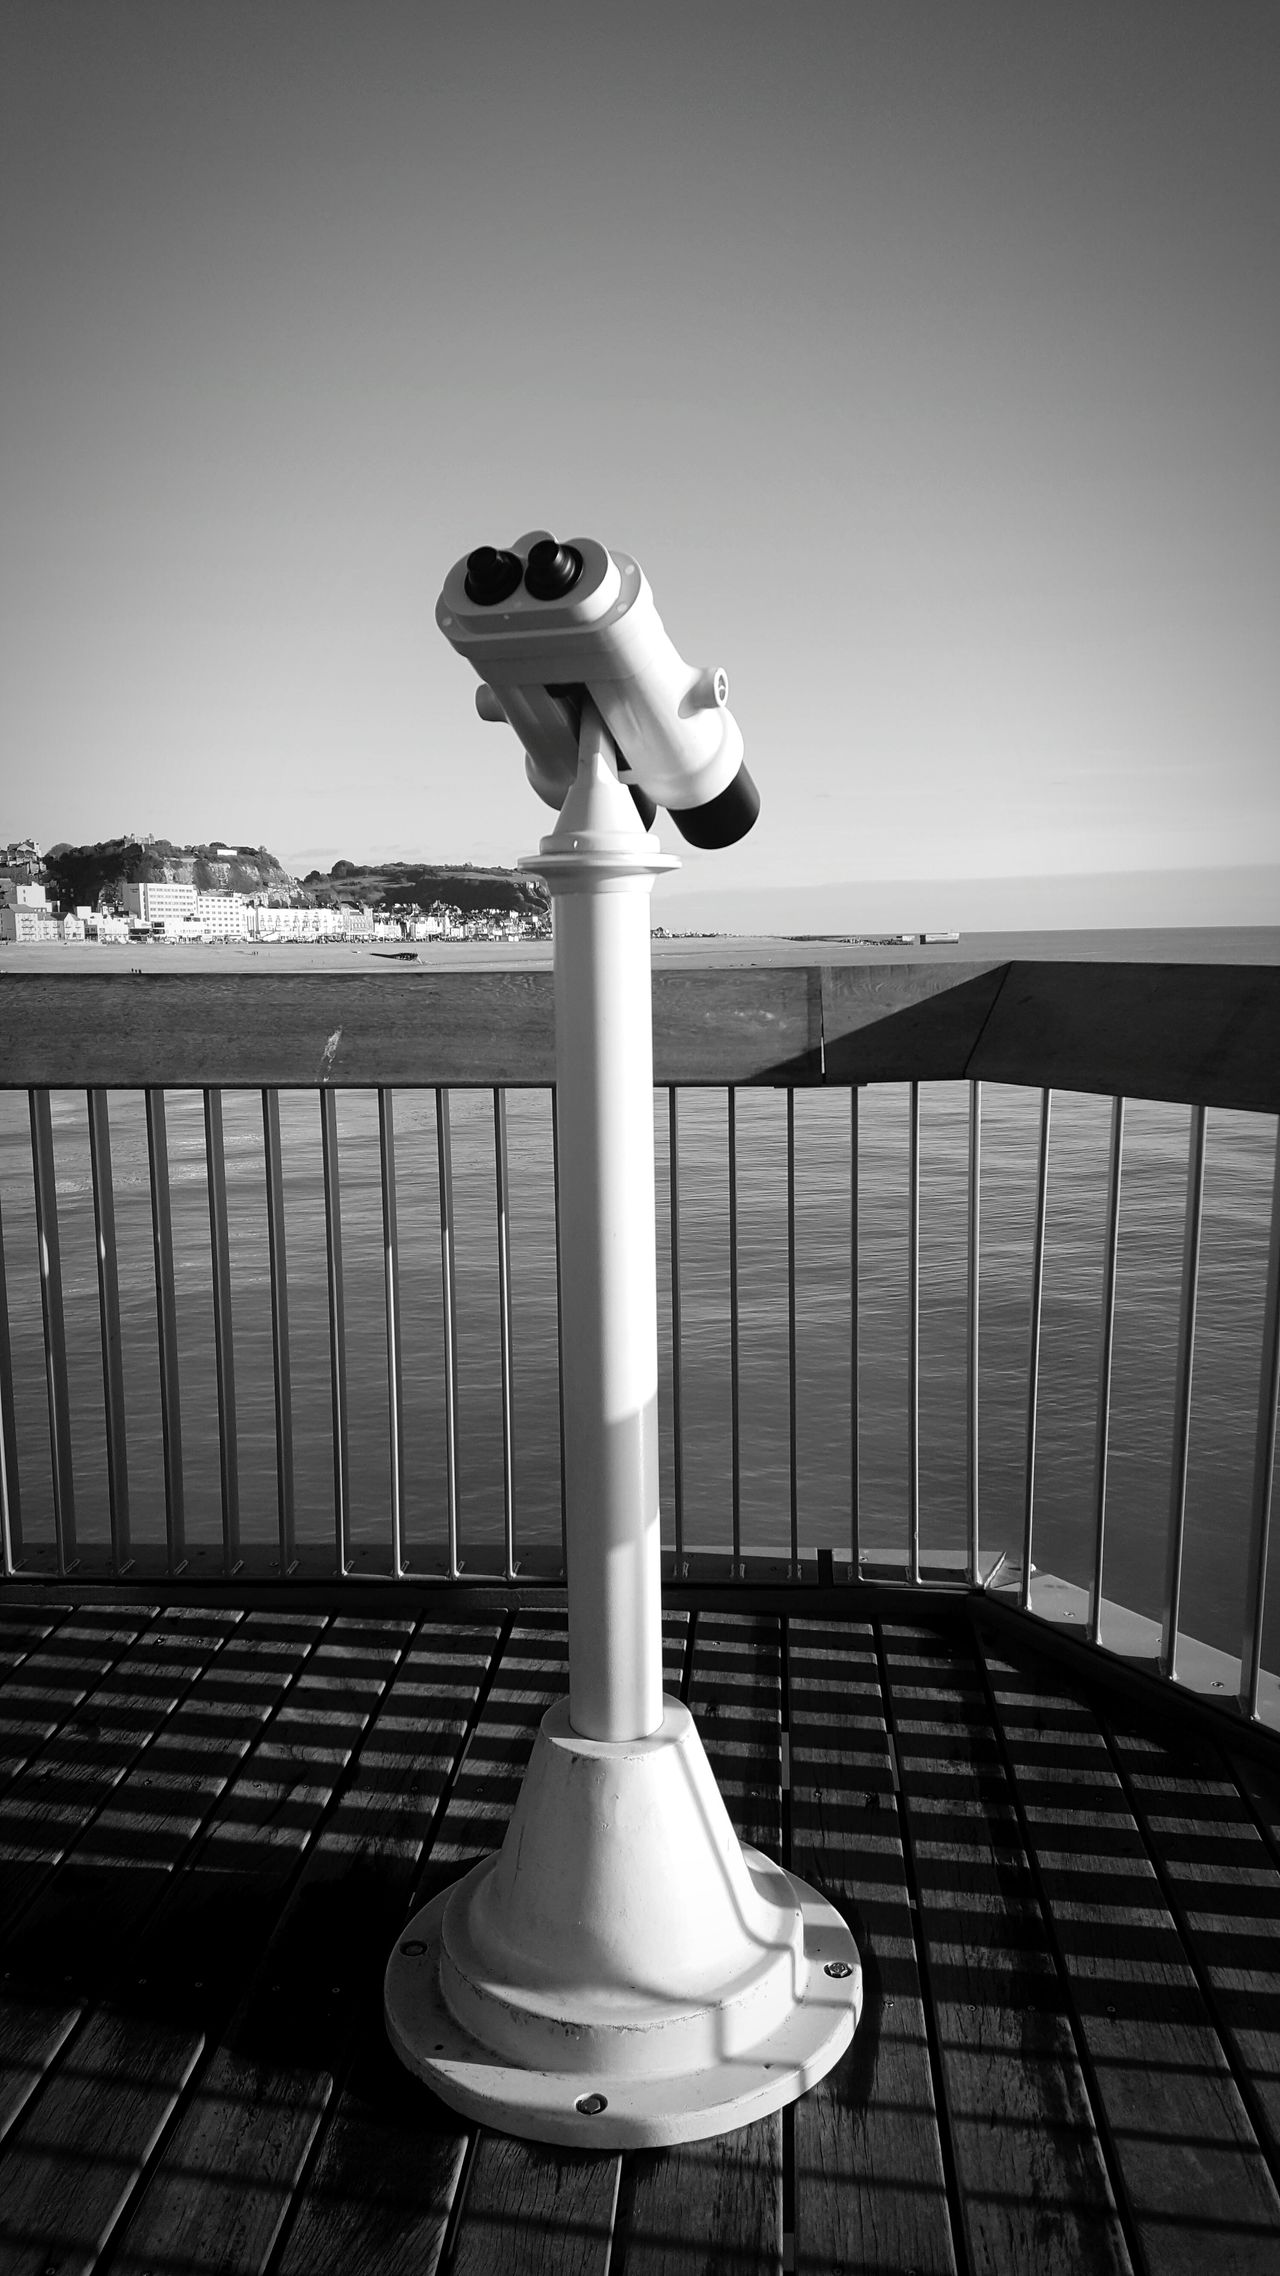 Pier blackandwhite Water Day Coin-operated Binoculars Outdoors Clear Sky Telescope Sky No People Nature Travel Destinations Beach Beauty In Nature Pier Town Spectacular Seaside Railing Horizon Over Water Landscape Coastline Seaside Life Seaside Town Architecture